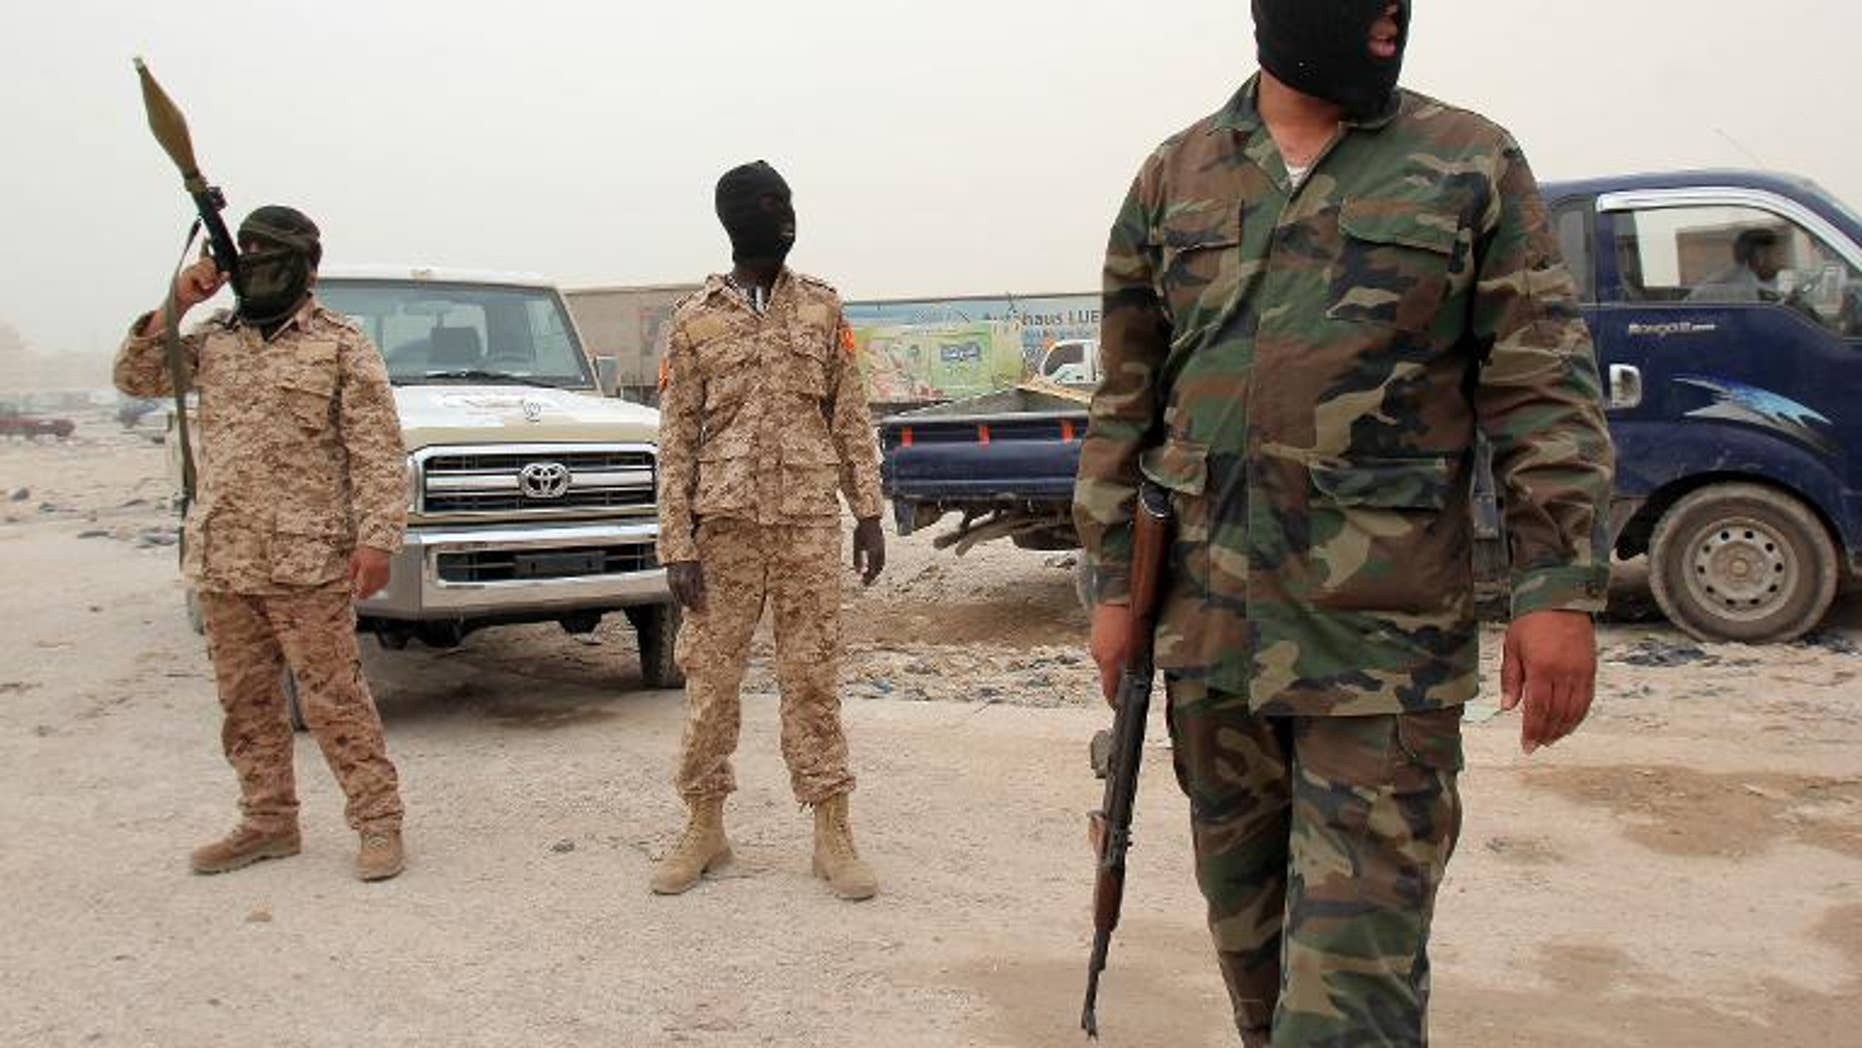 Members of the Libyan Rapid intervention force unit patrol at a checkpoint in Benghazi on May 16, 2013